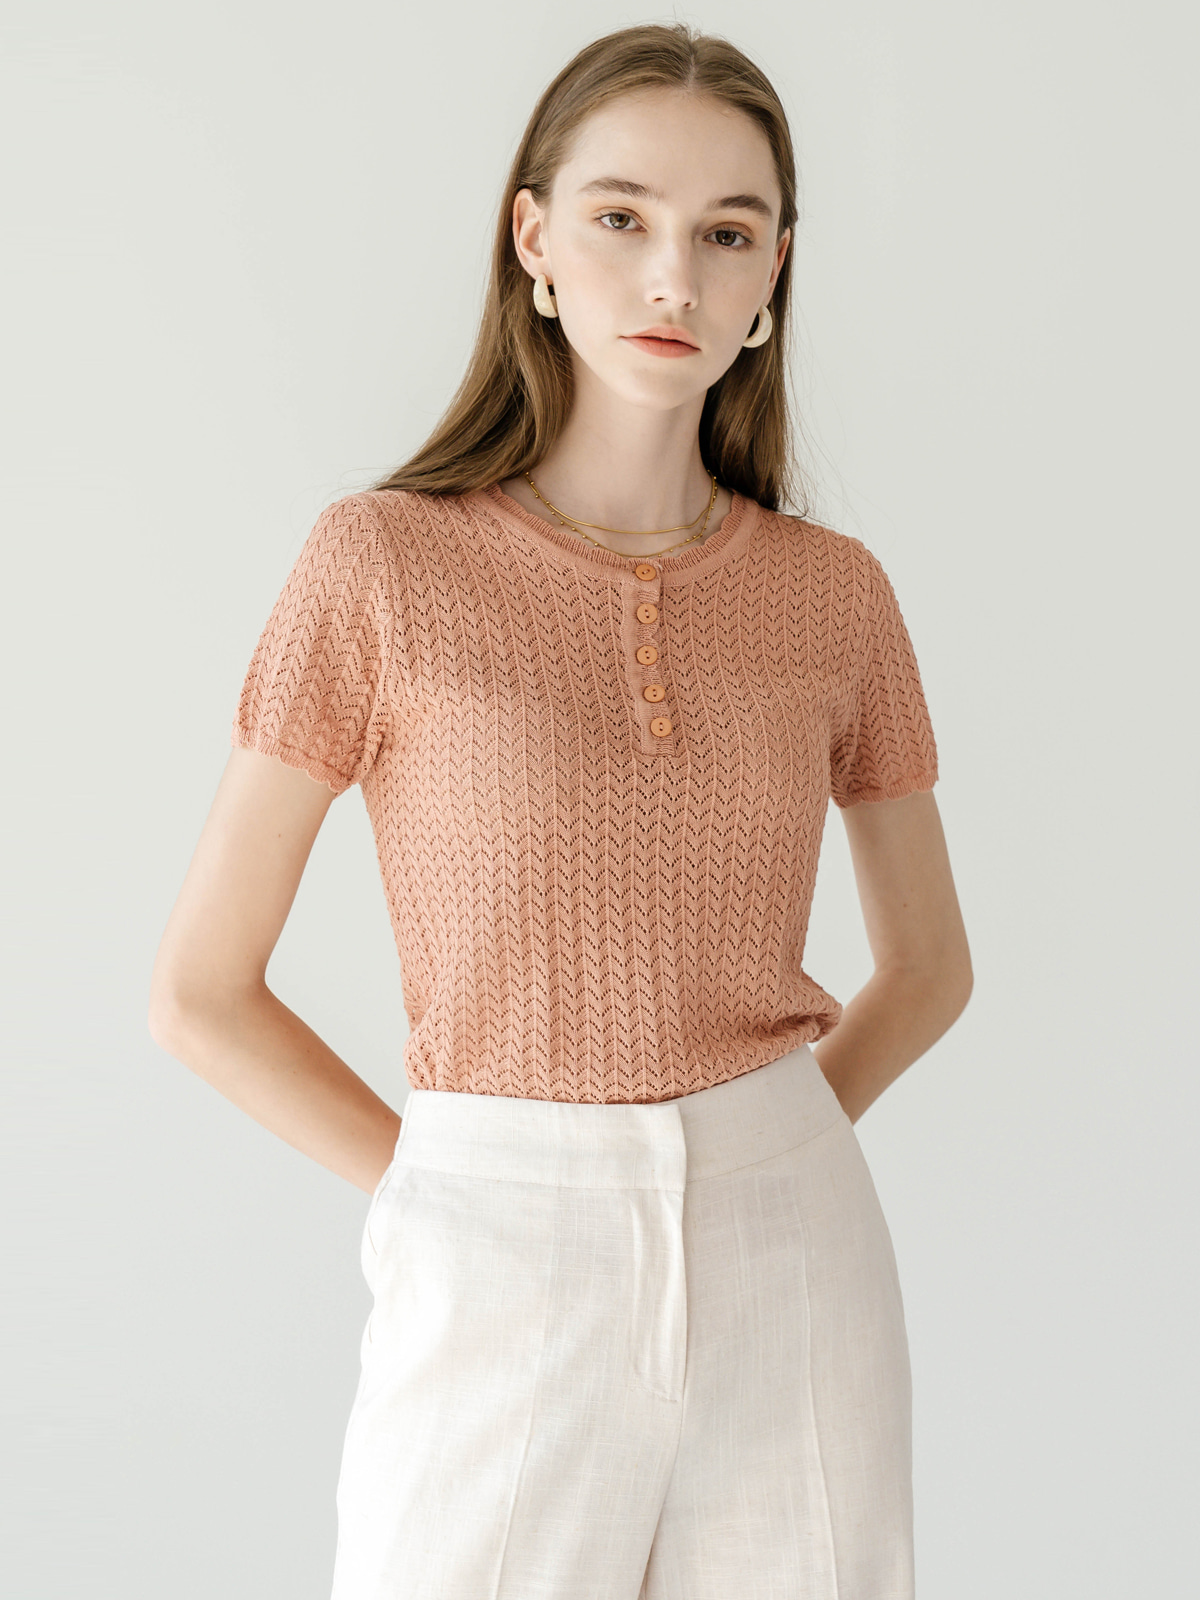 Mollie Half Sleeve Knit Top_ Peach